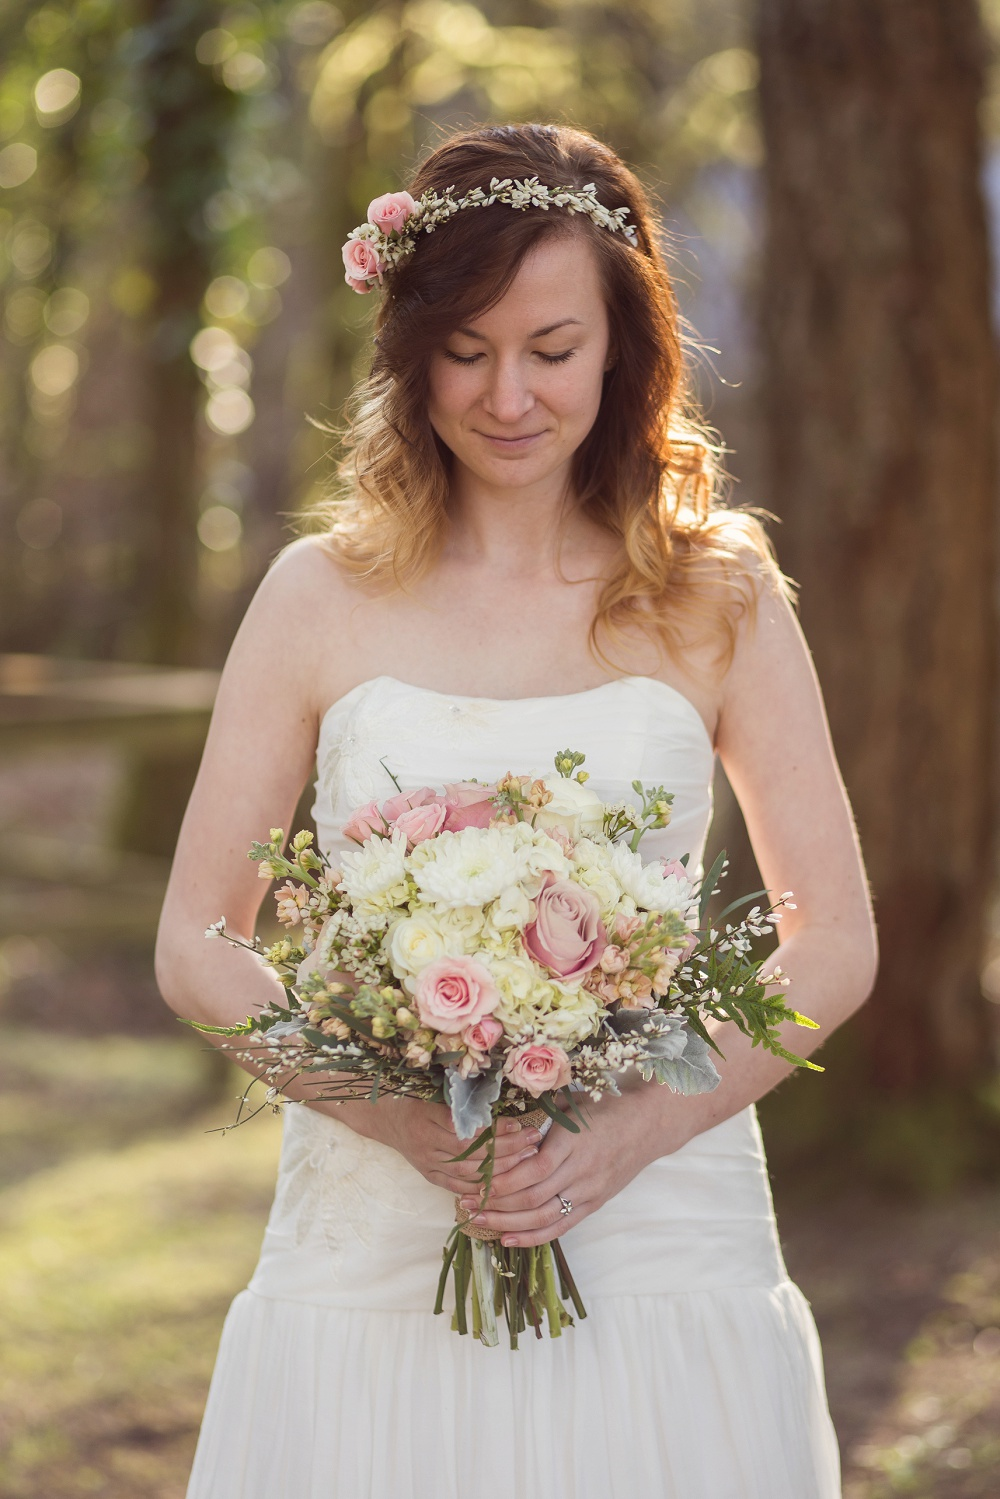 Enumclaw_wedding_photographer_2.jpg